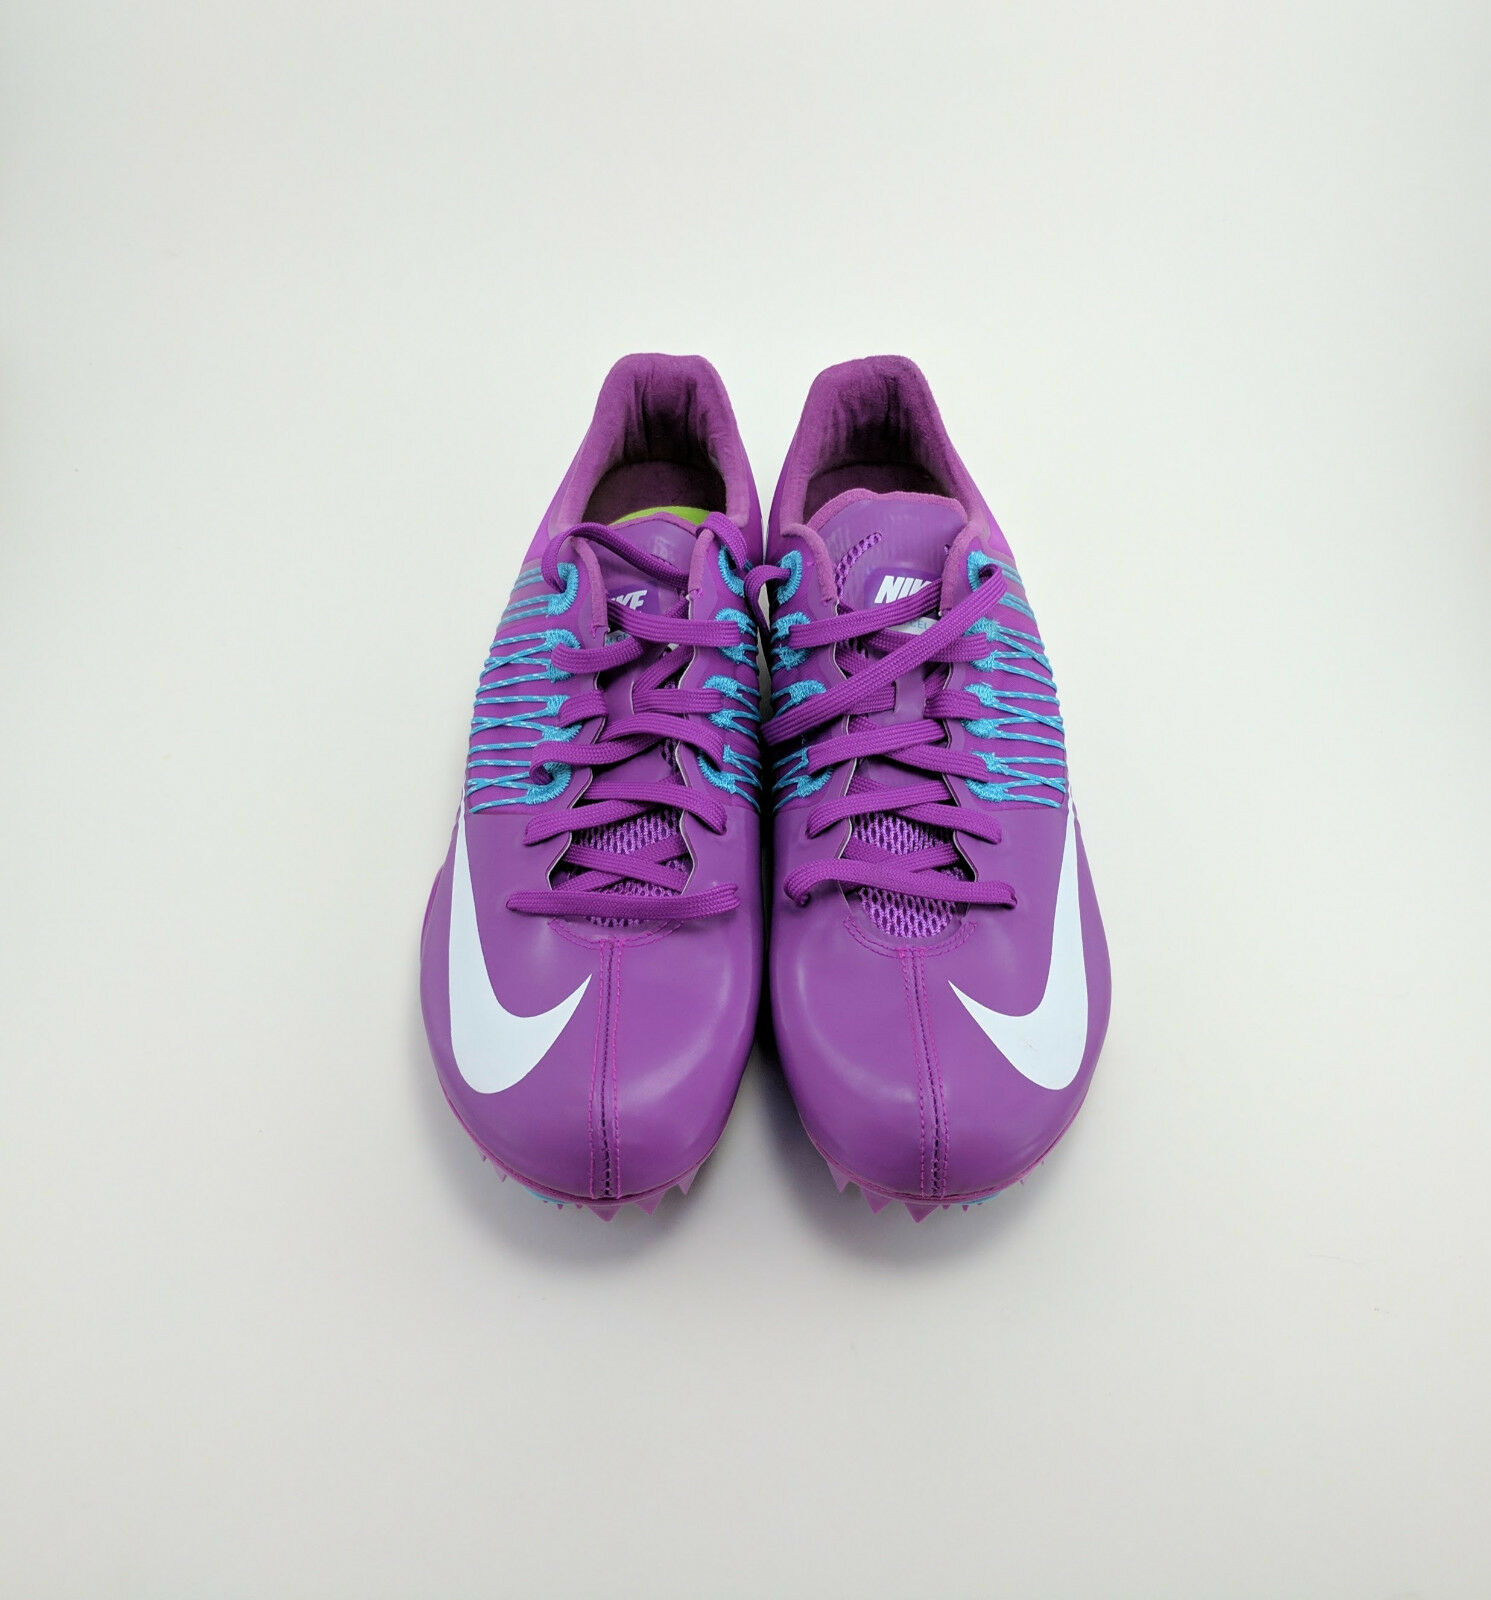 NEW Nike Zoom Celar 5 Track Sprint Spikes Hyper purple Purple Sz 8.5 629226-514